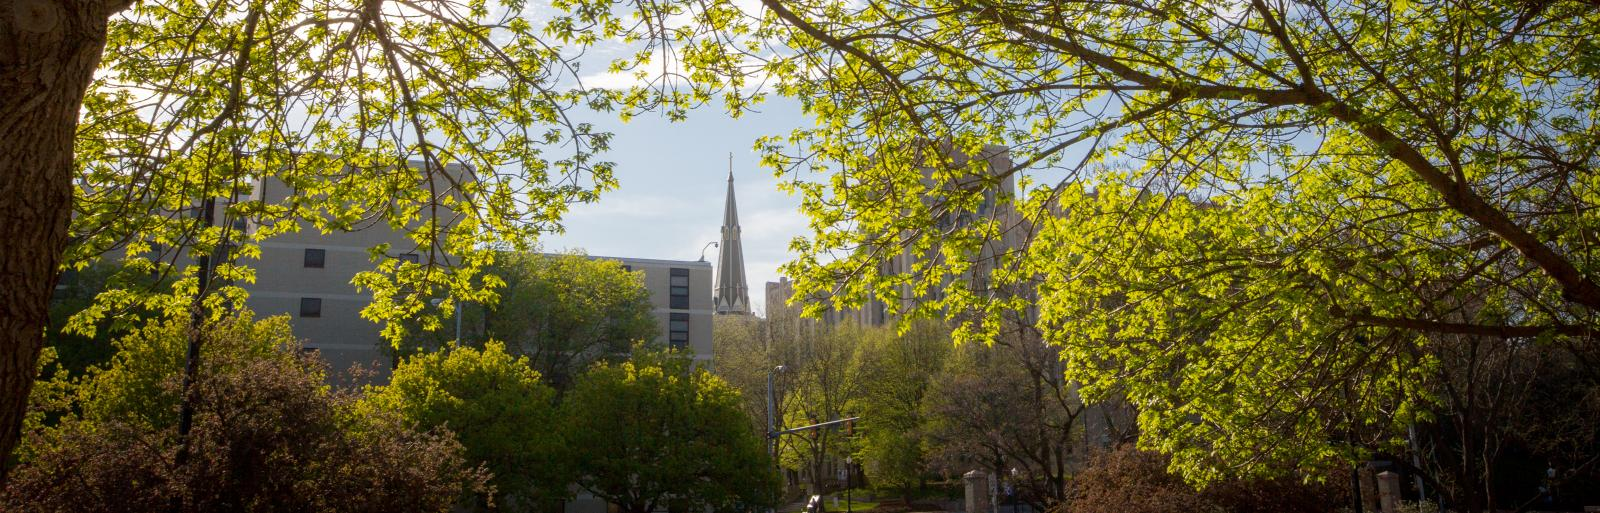 view of Creighton University through trees